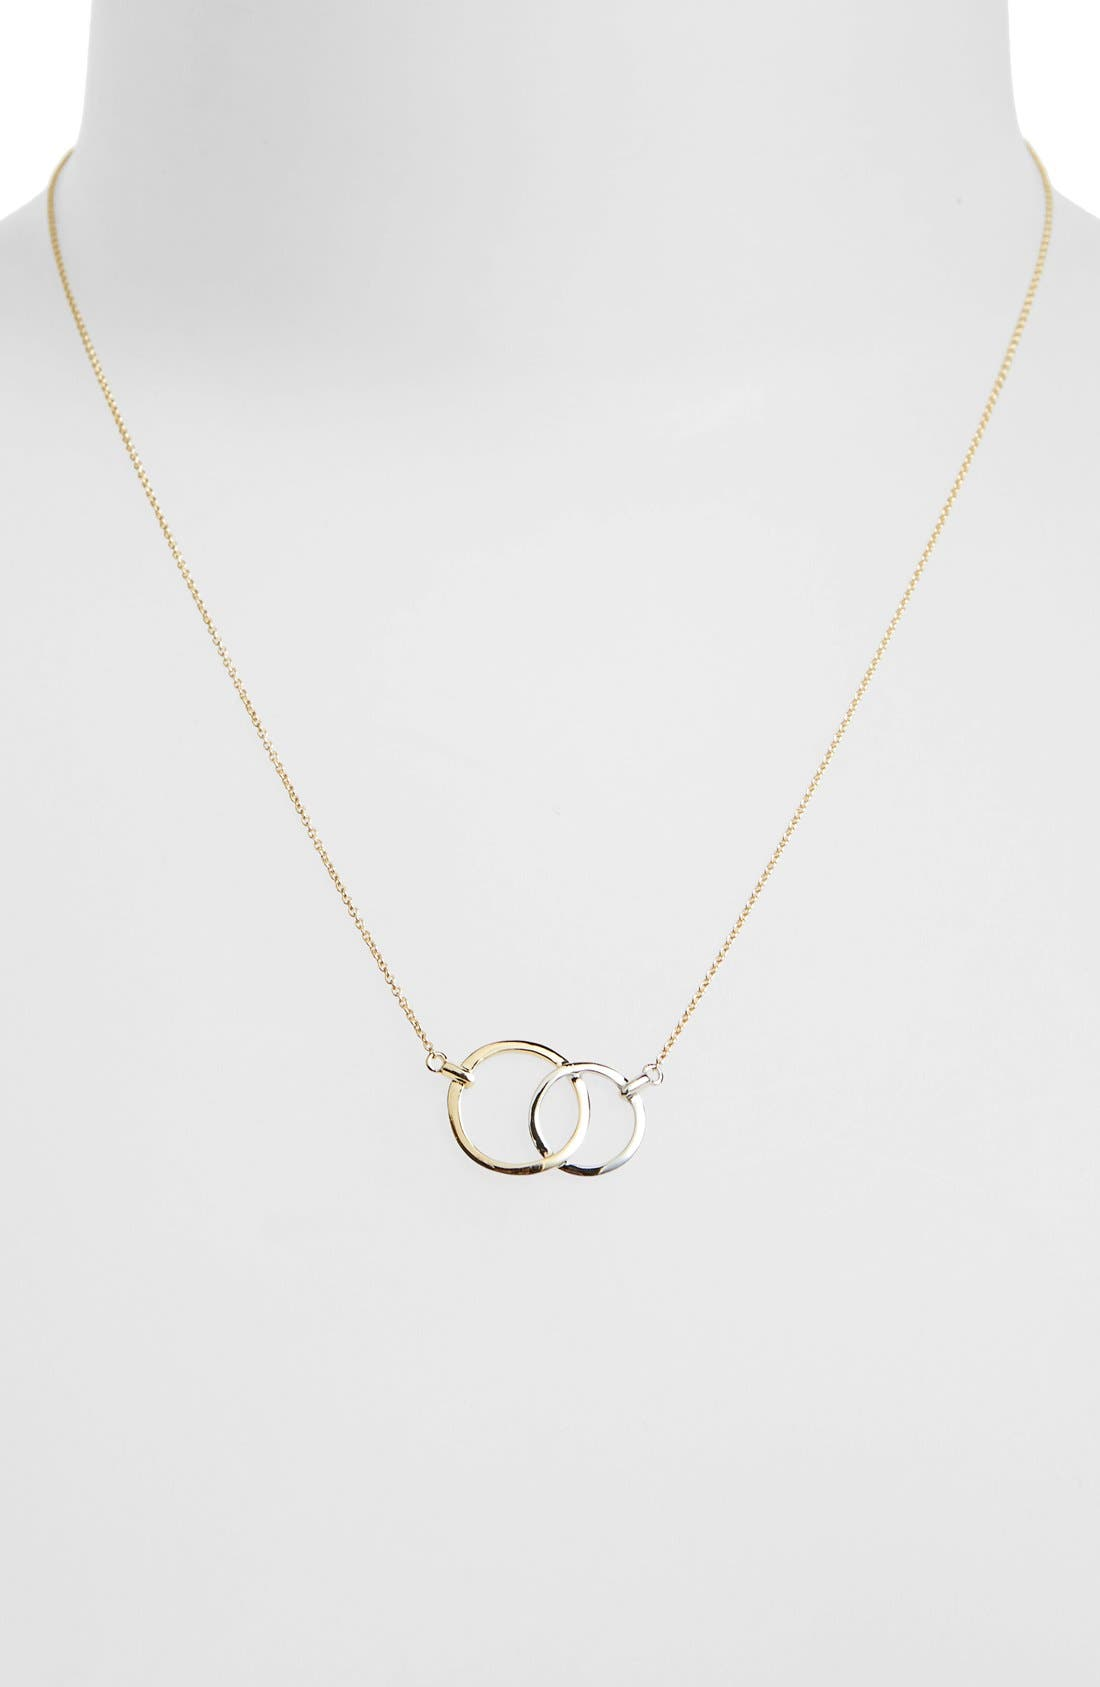 Double Circle Pendant Necklace,                             Alternate thumbnail 2, color,                             Yellow Gold/ White Gold